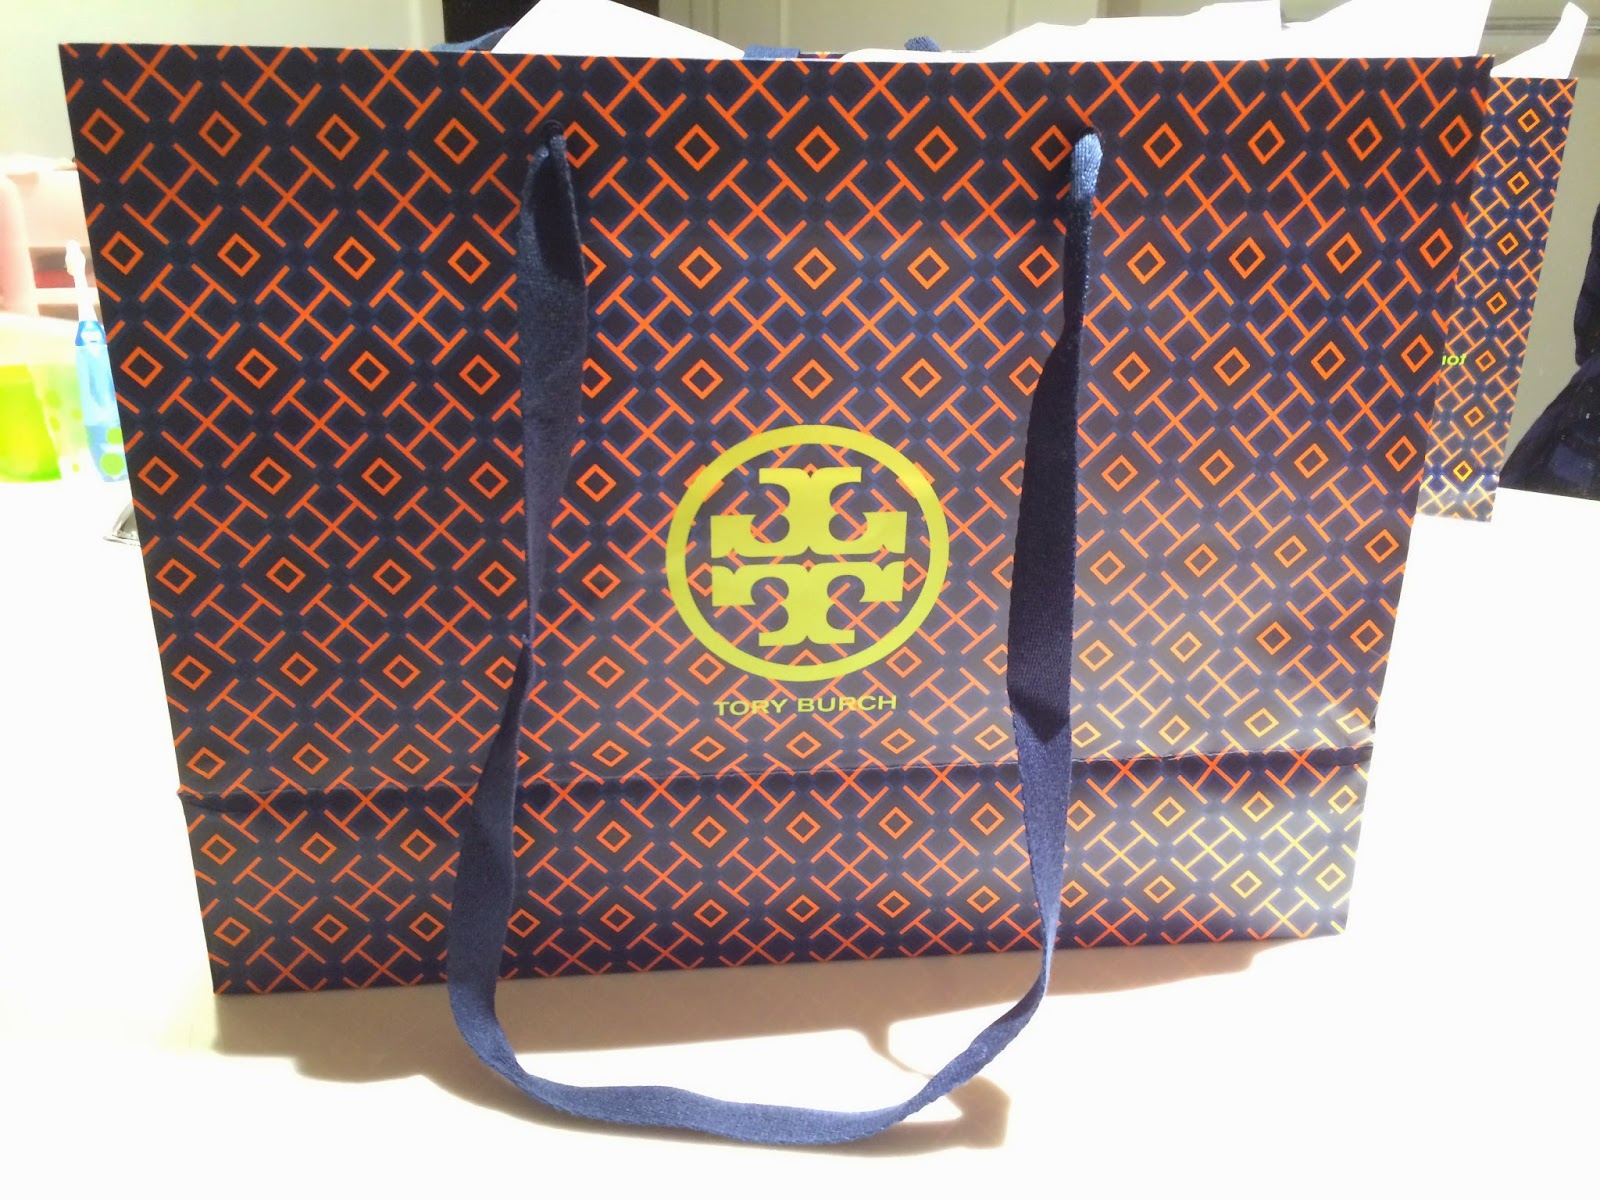 Tory Burch Shopping Bag Design